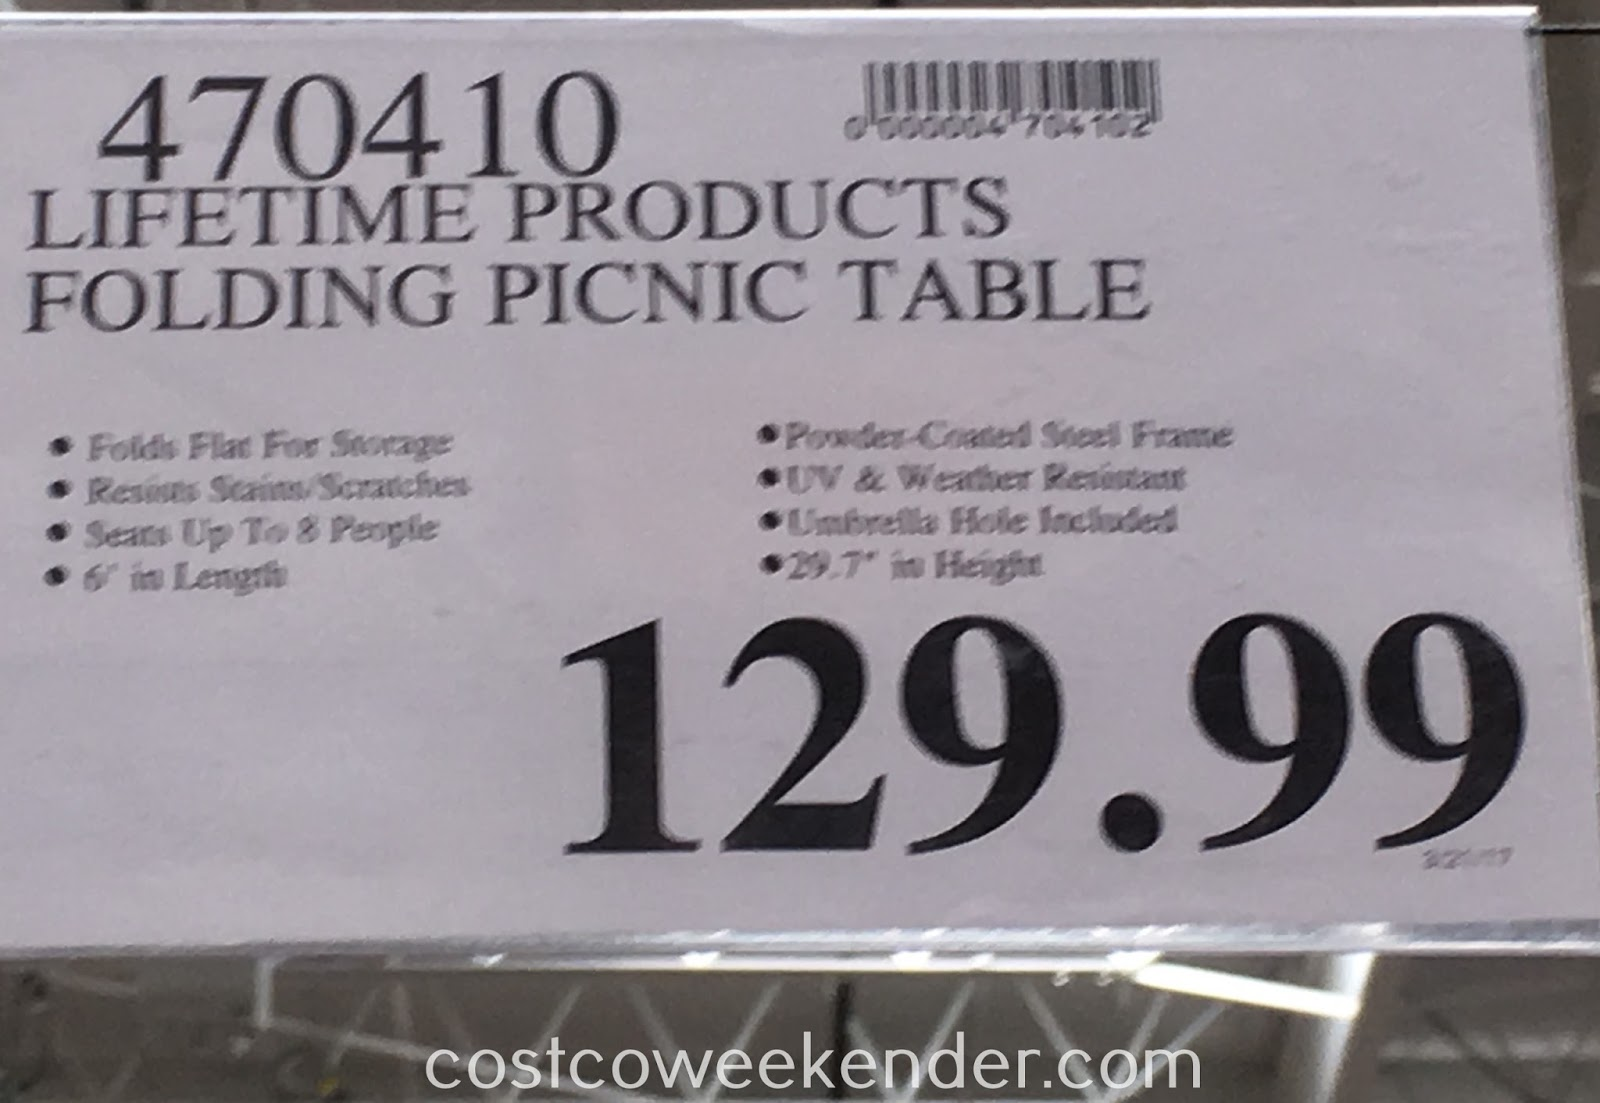 Deal for the Lifetime Products Folding Picnic Table at Costco